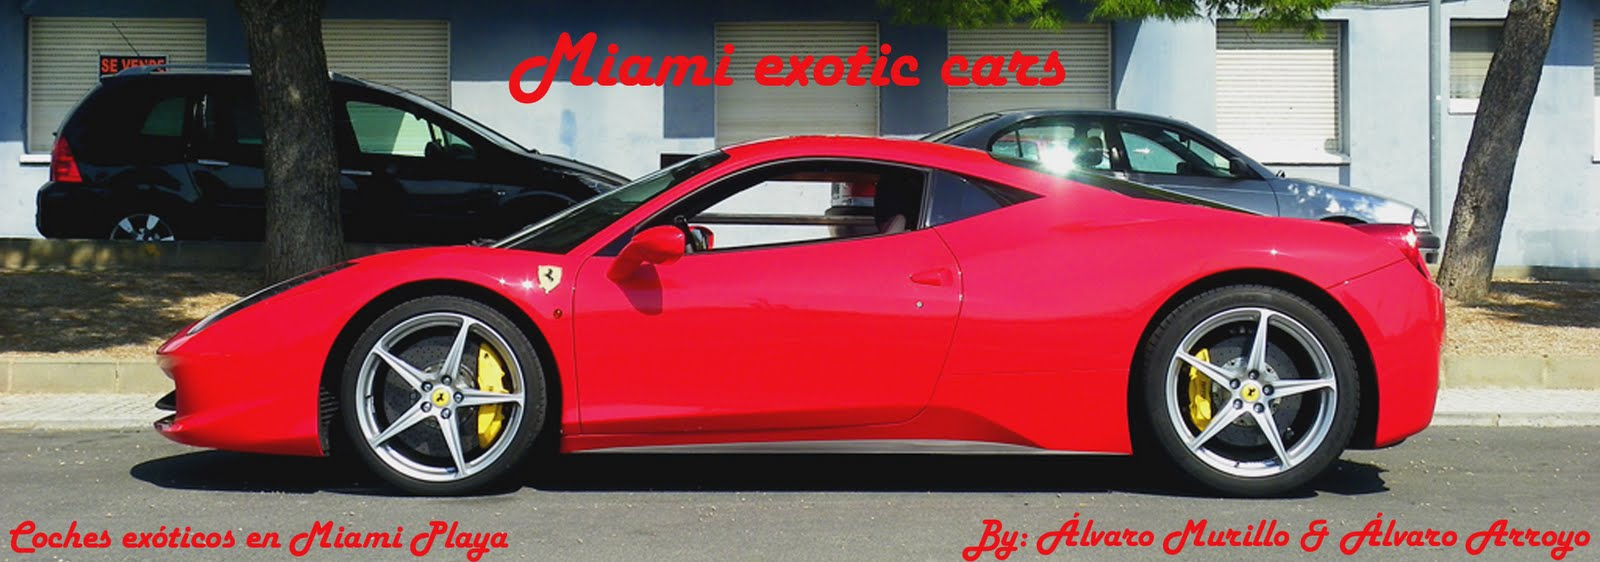 Miami Exotic Cars